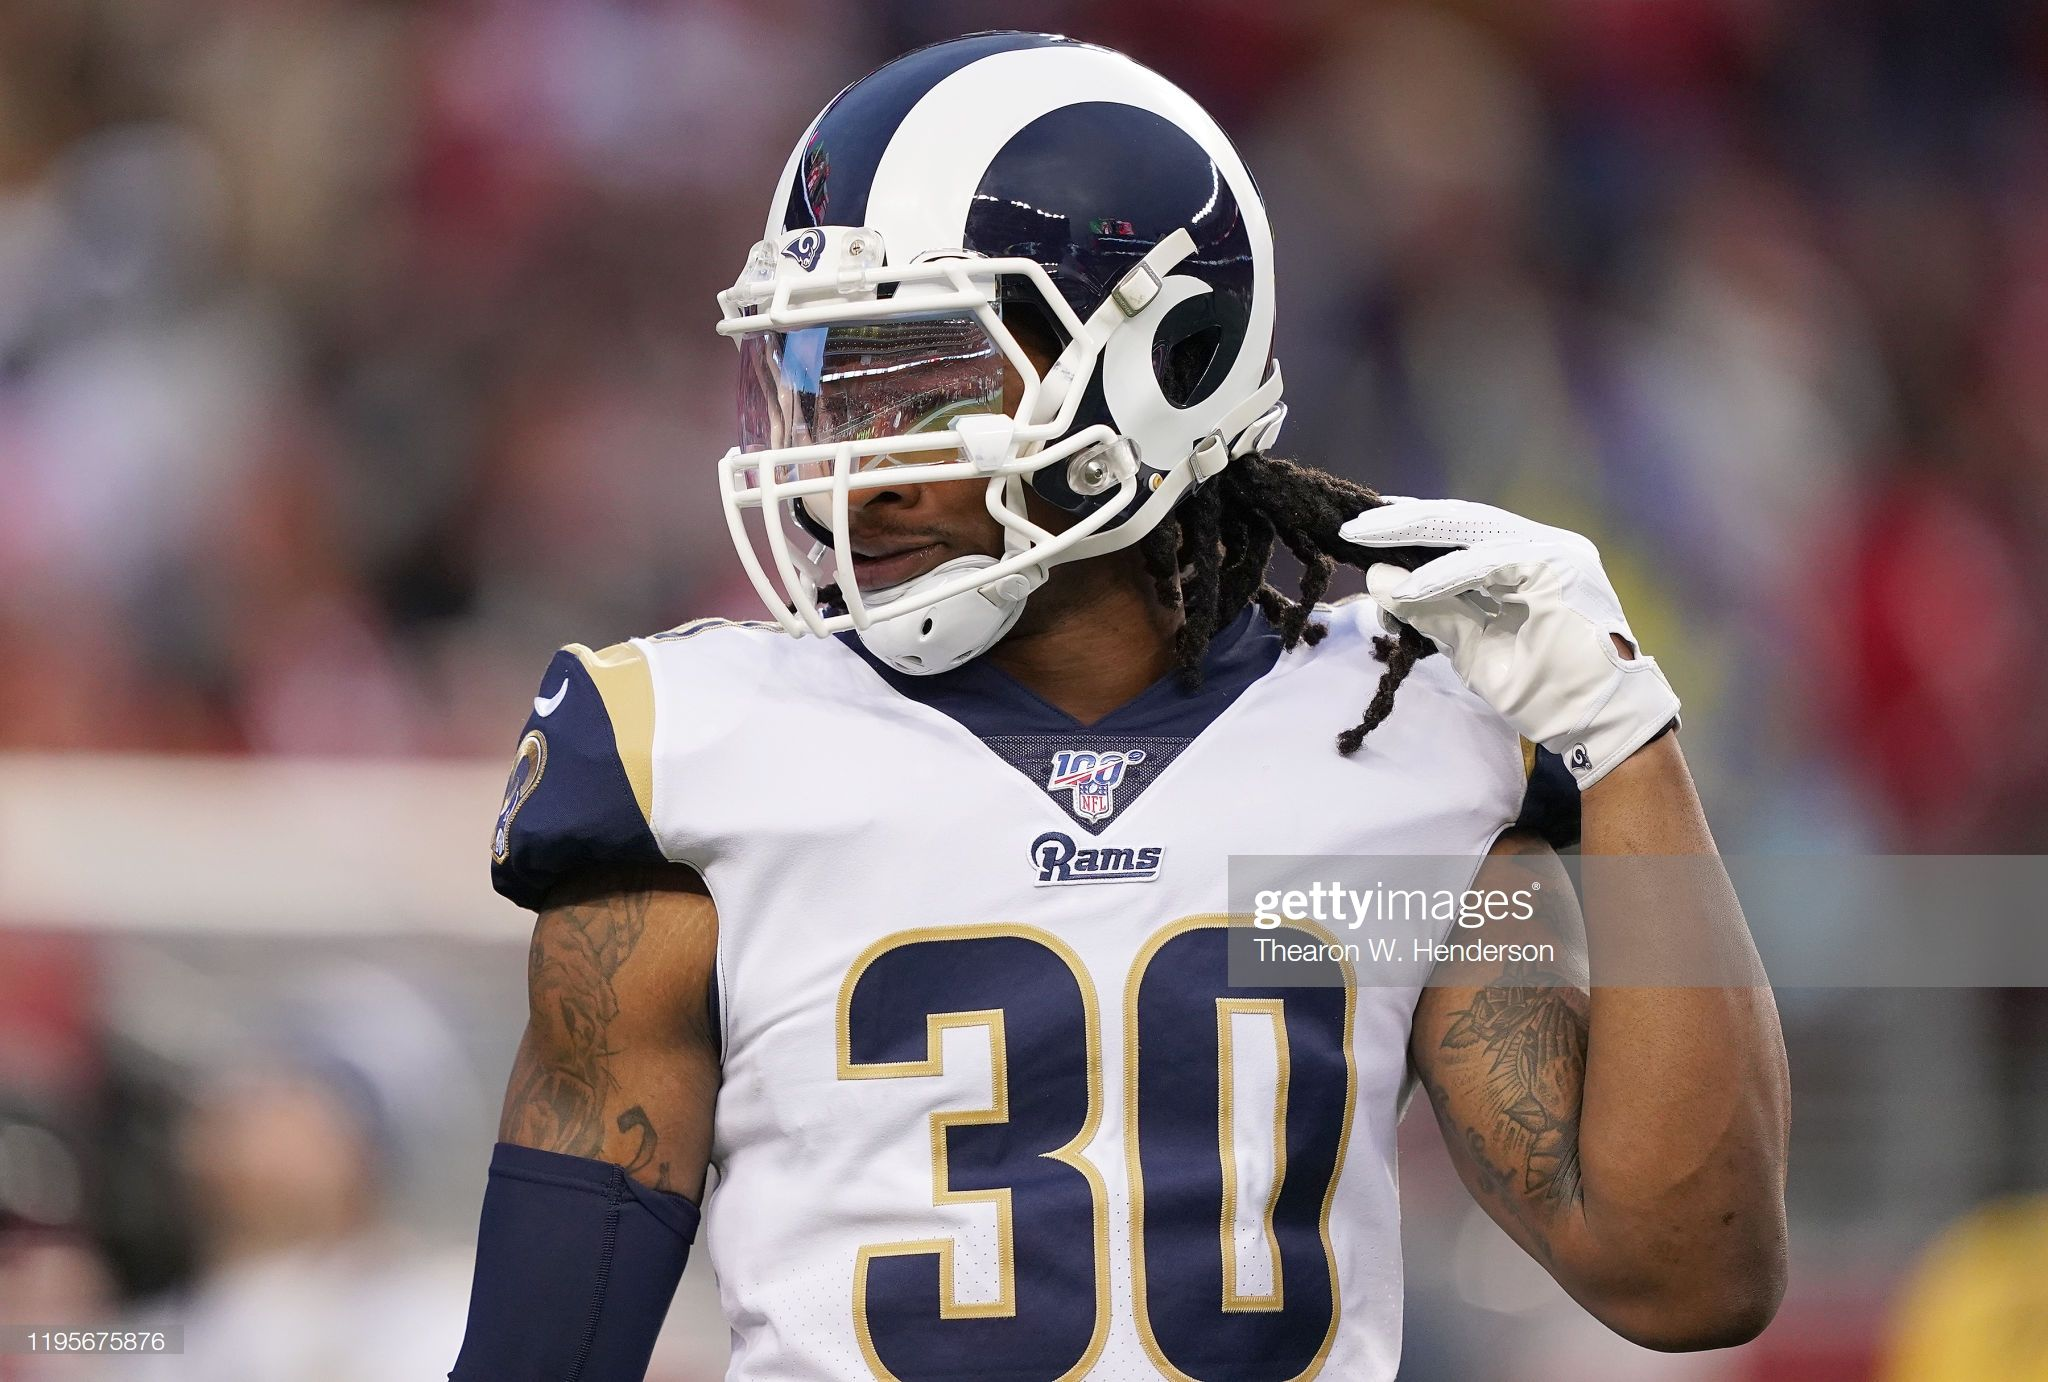 Pin By Jess On Todd Gurley Football Helmets Todd Gurley Football